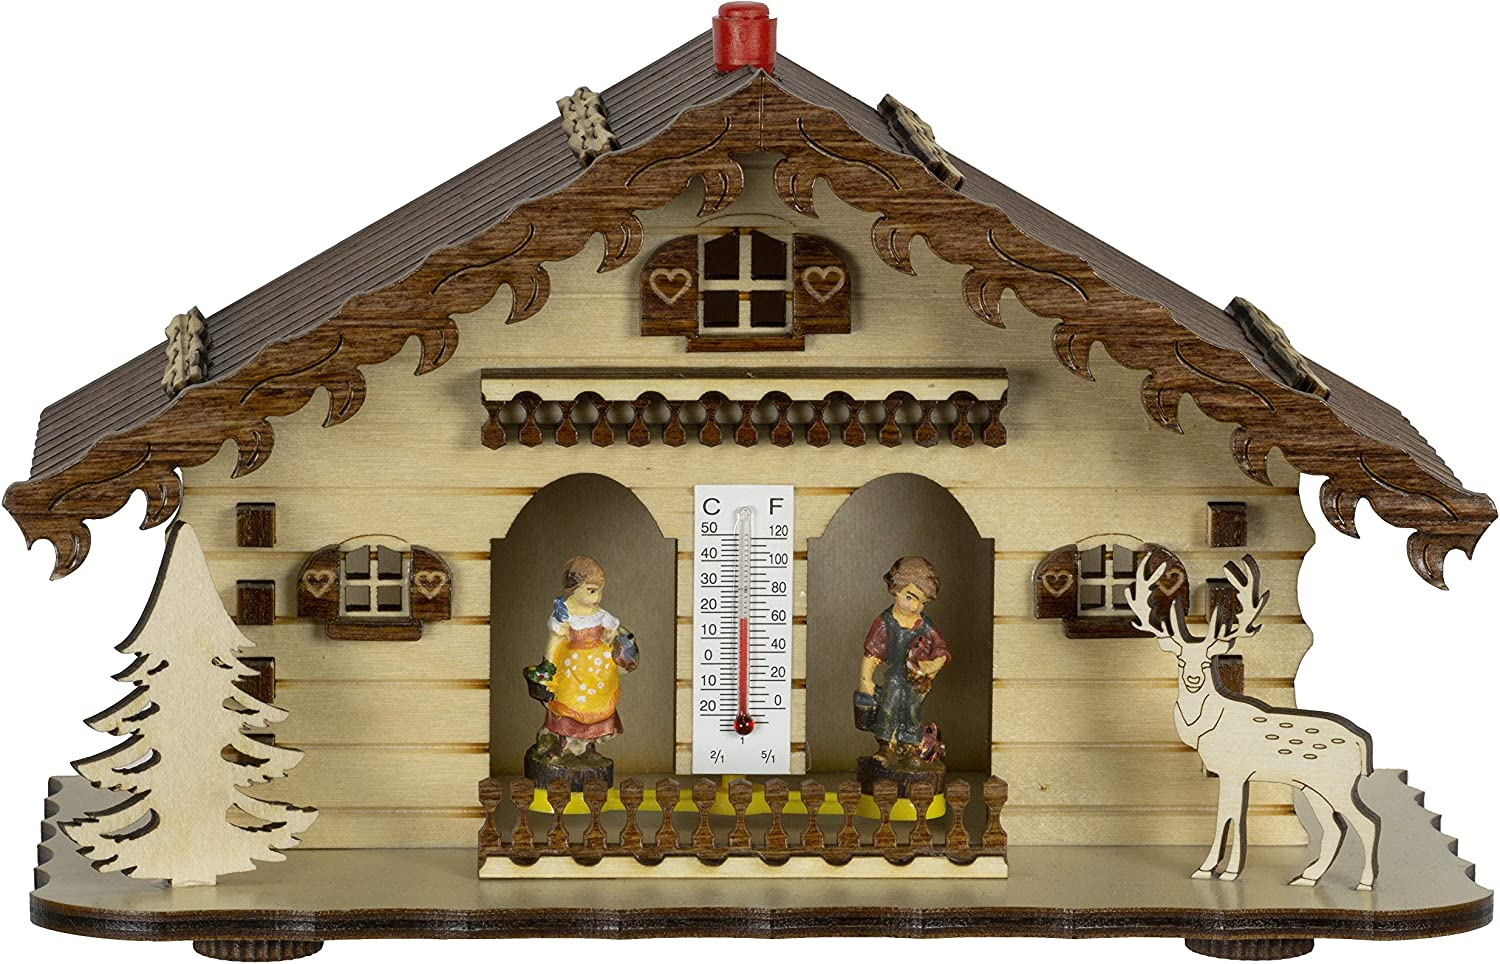 Trenkle Tulsa Mall German Black Forest TU weather house 863 Safety and trust